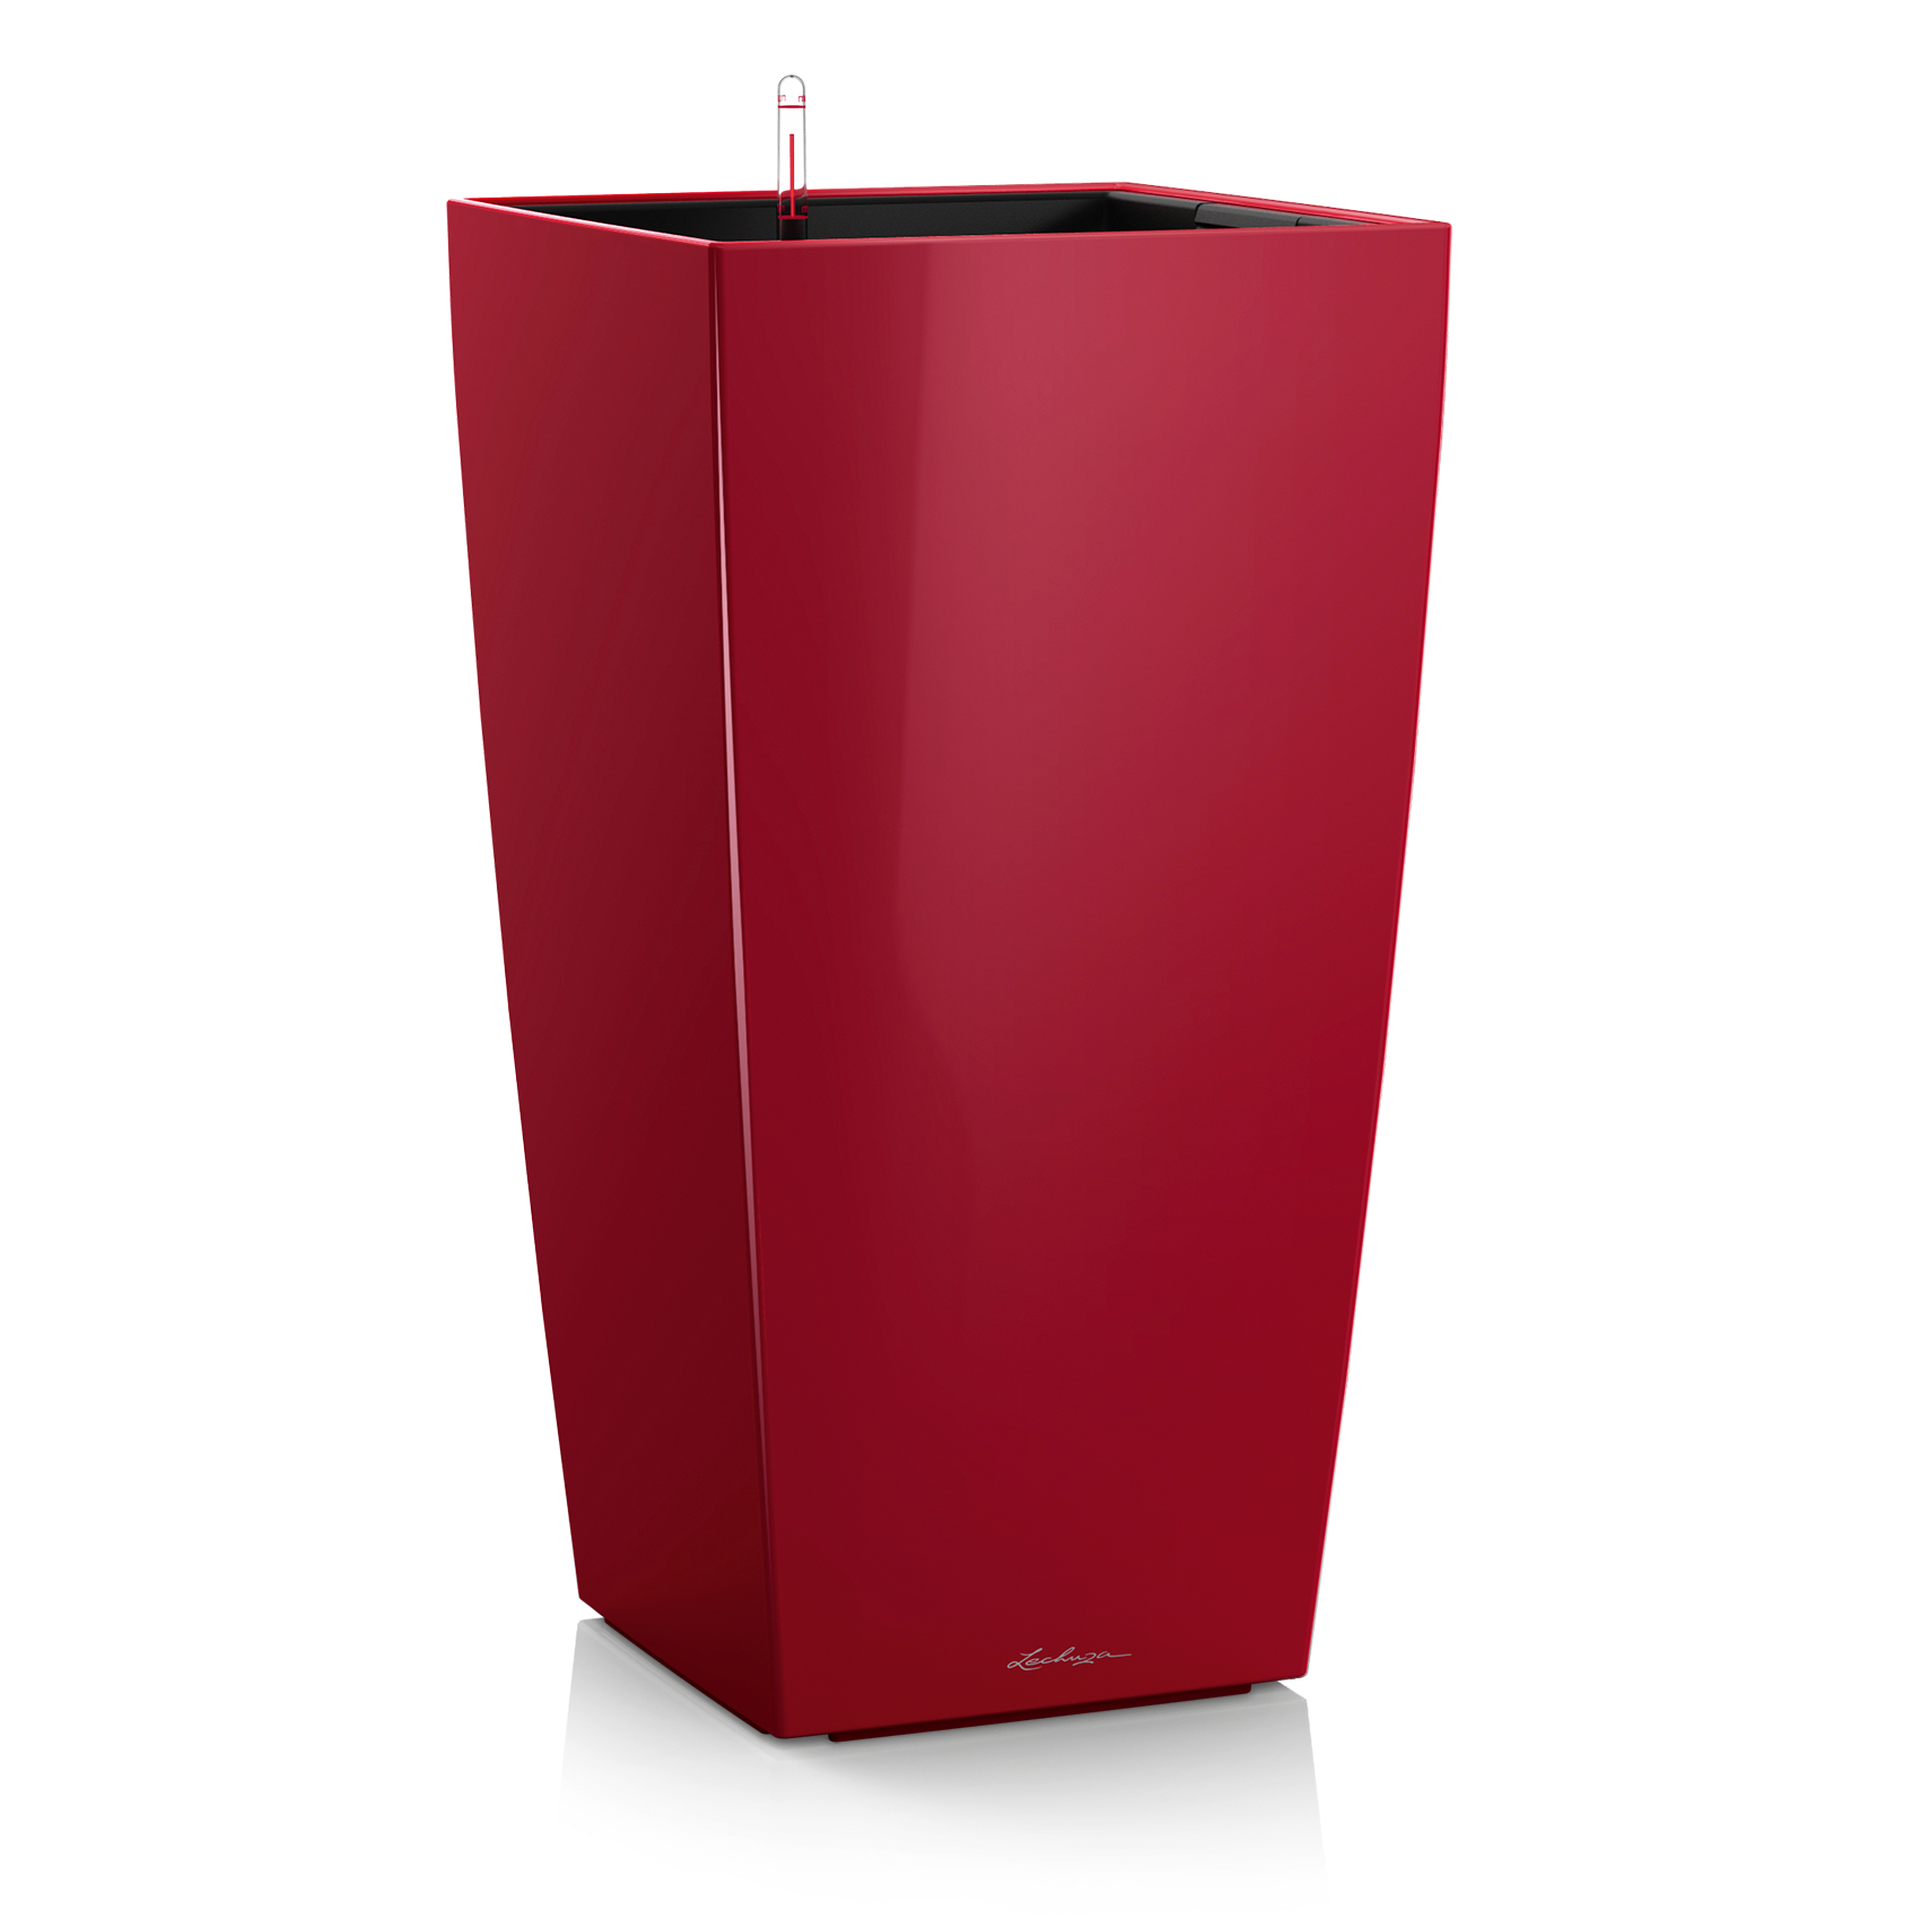 CUBICO 40 scarlet red high-gloss